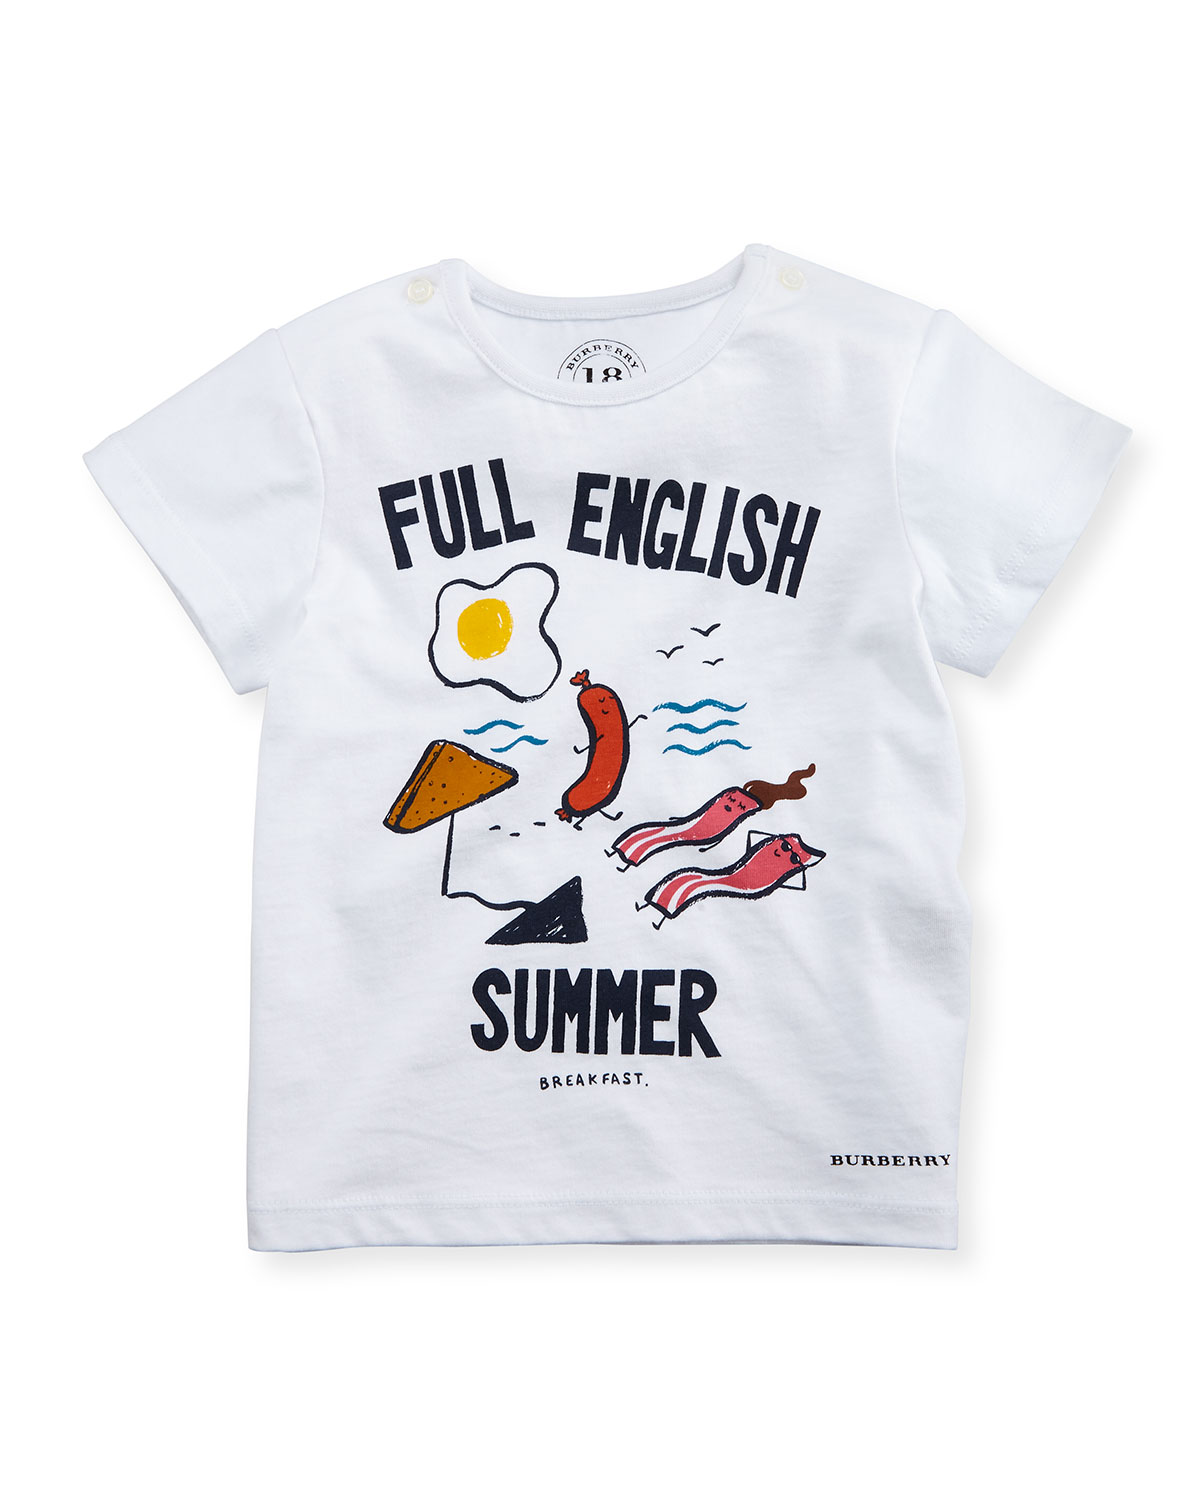 Full English Summer Tee, White, Infant/Toddler